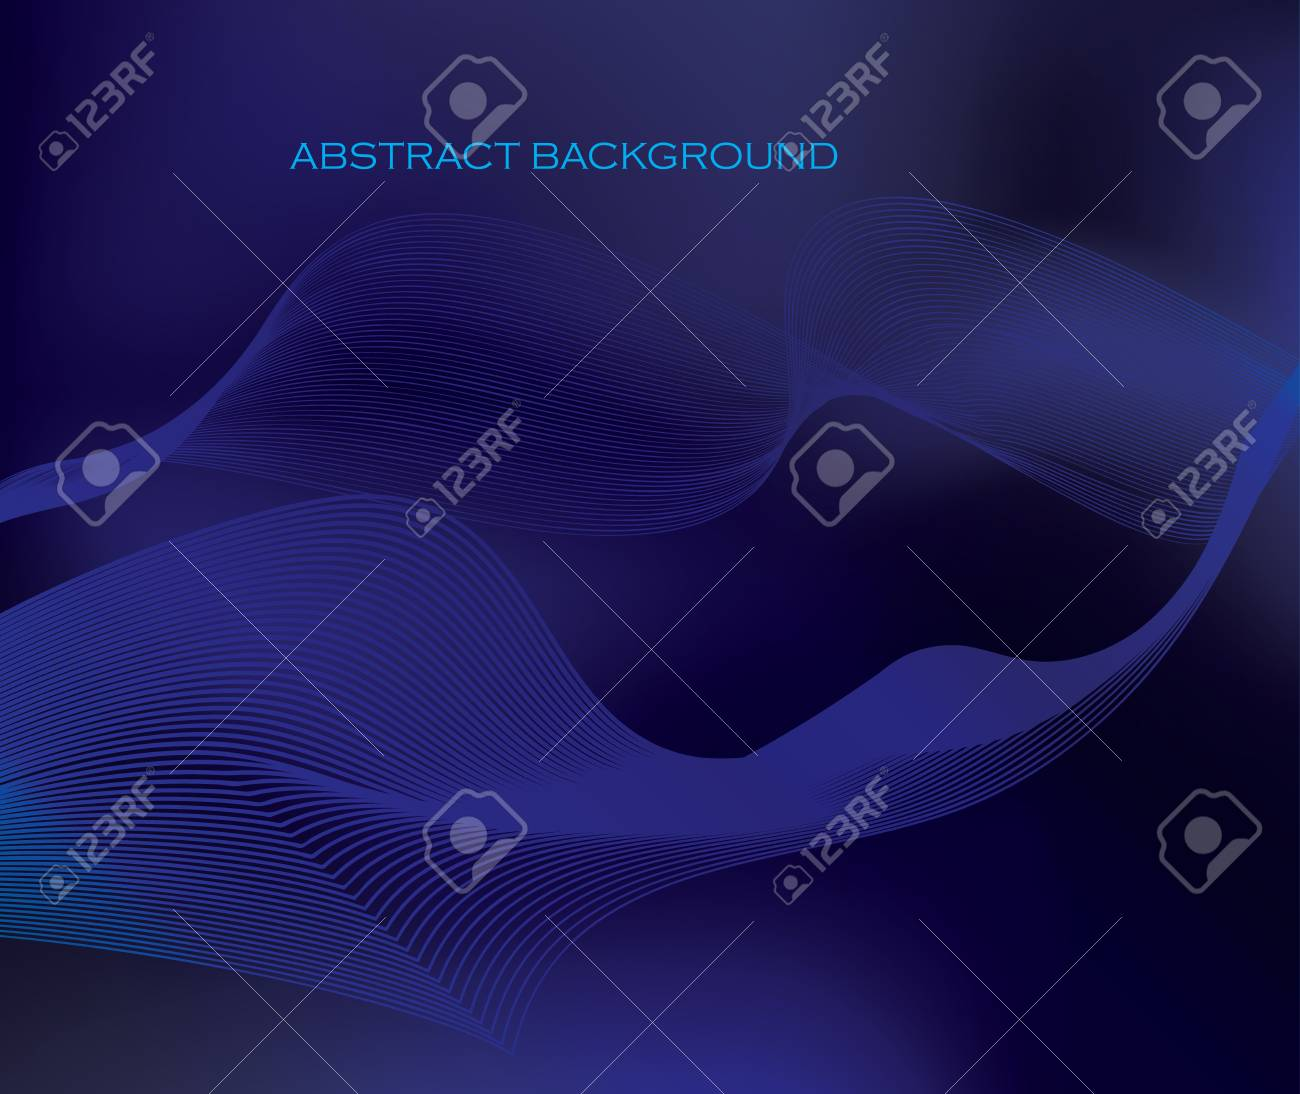 Flowing Stylish Trendy Bright Modern Smooth Attractive Design Wallpaper Wave Background Vector Backdrop Abstract Art Motion Technology